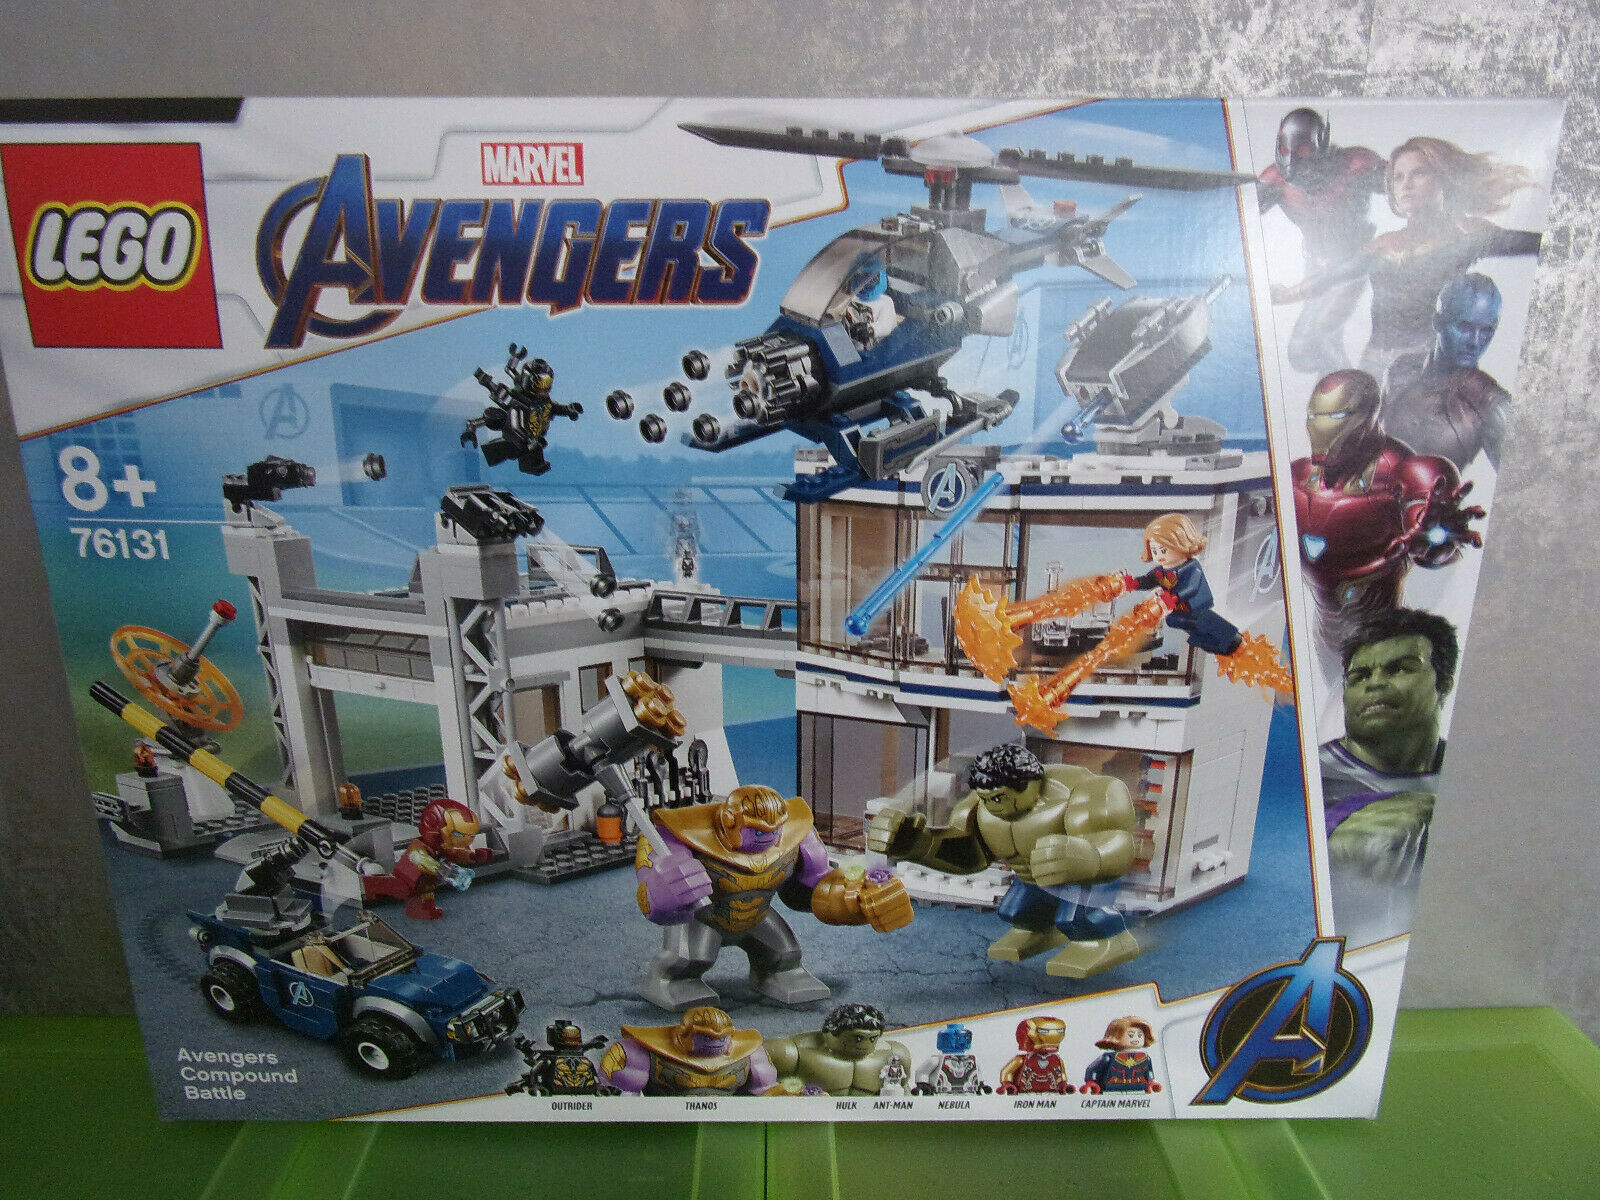 Lego Marvel Avengers - 76131 Avengers compound Battle-nuevo & OVP